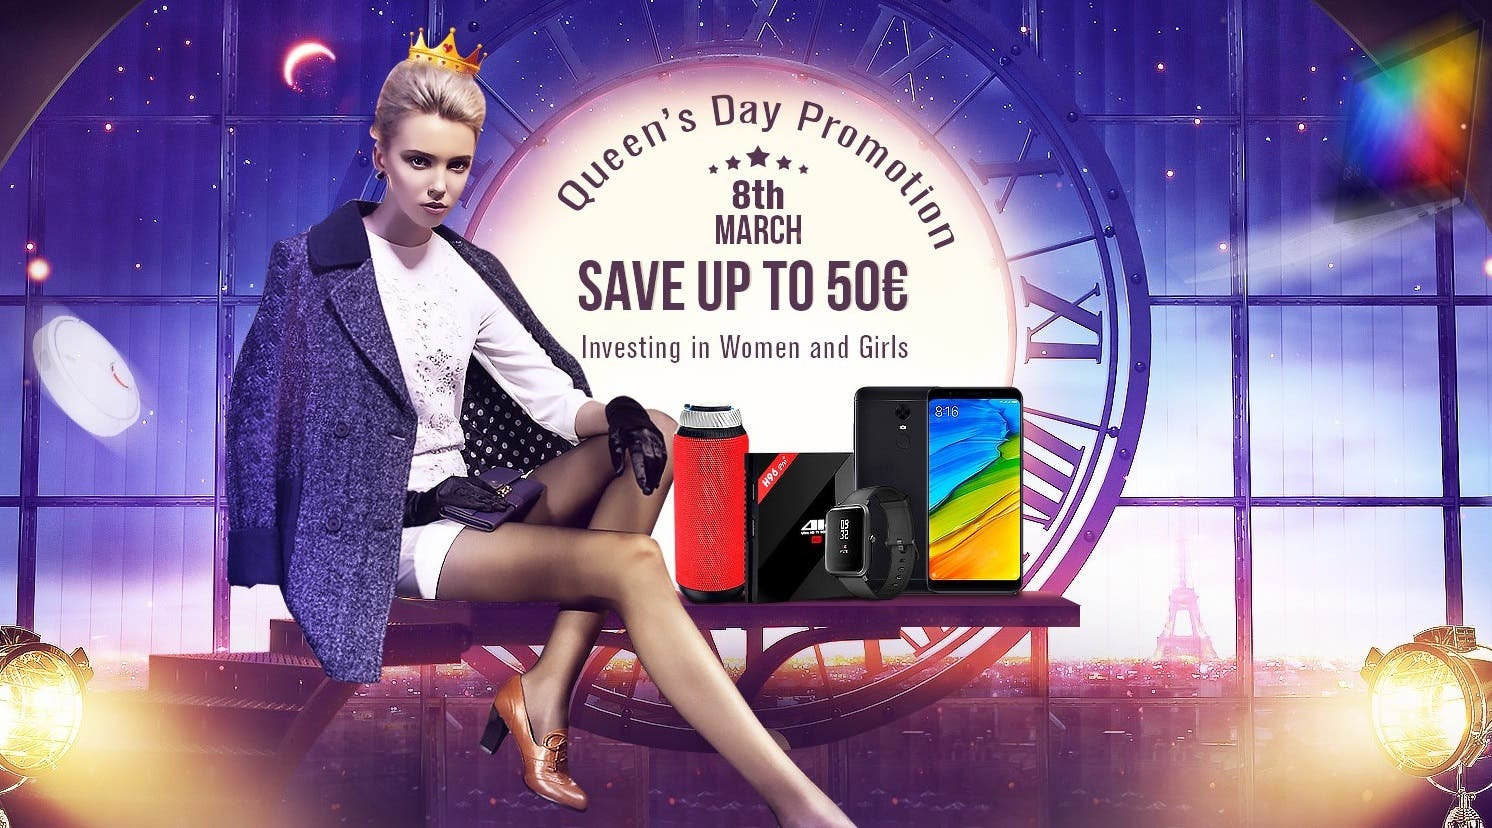 Queen's Day Promotion